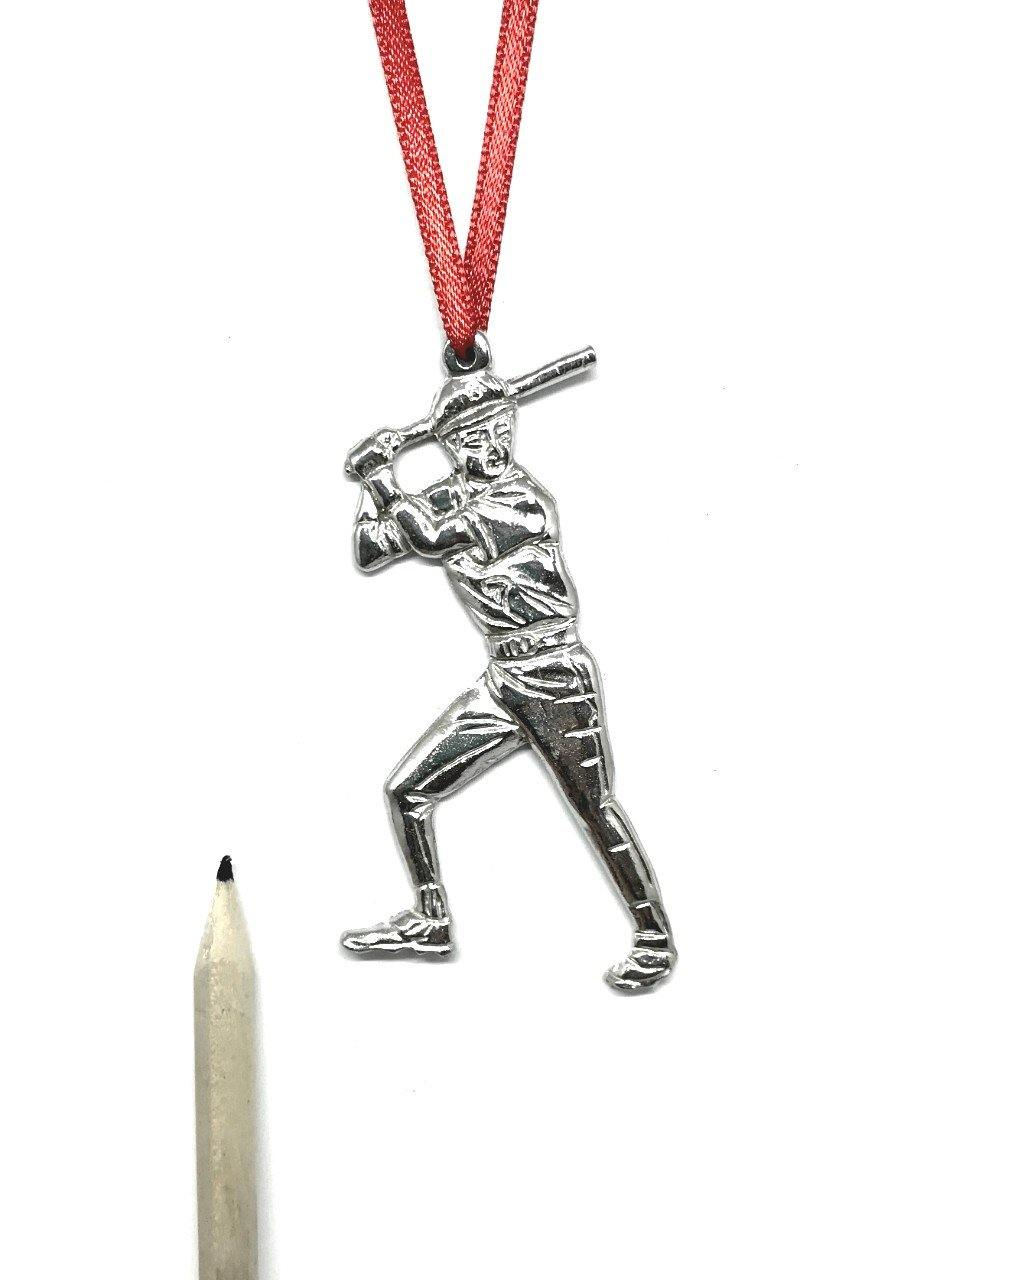 853 Baseball Player Coach Team Keepsake Christmas Holiday Ornament Pewter - House of Morgan Pewter